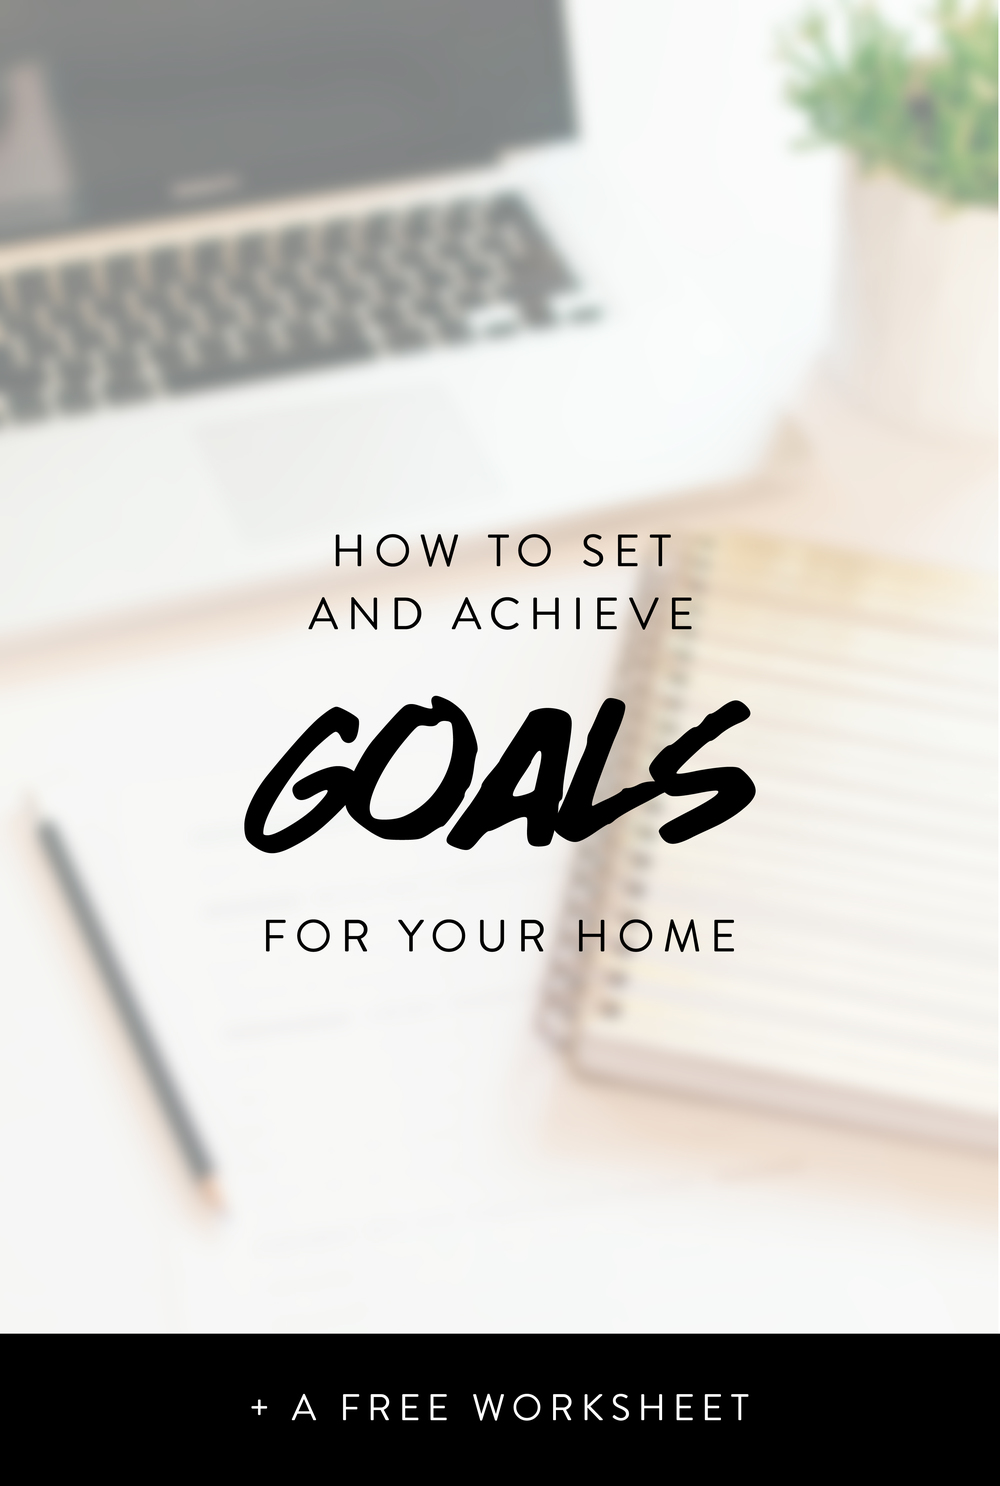 How to set and achieve goals for your home.  Click to learn more.